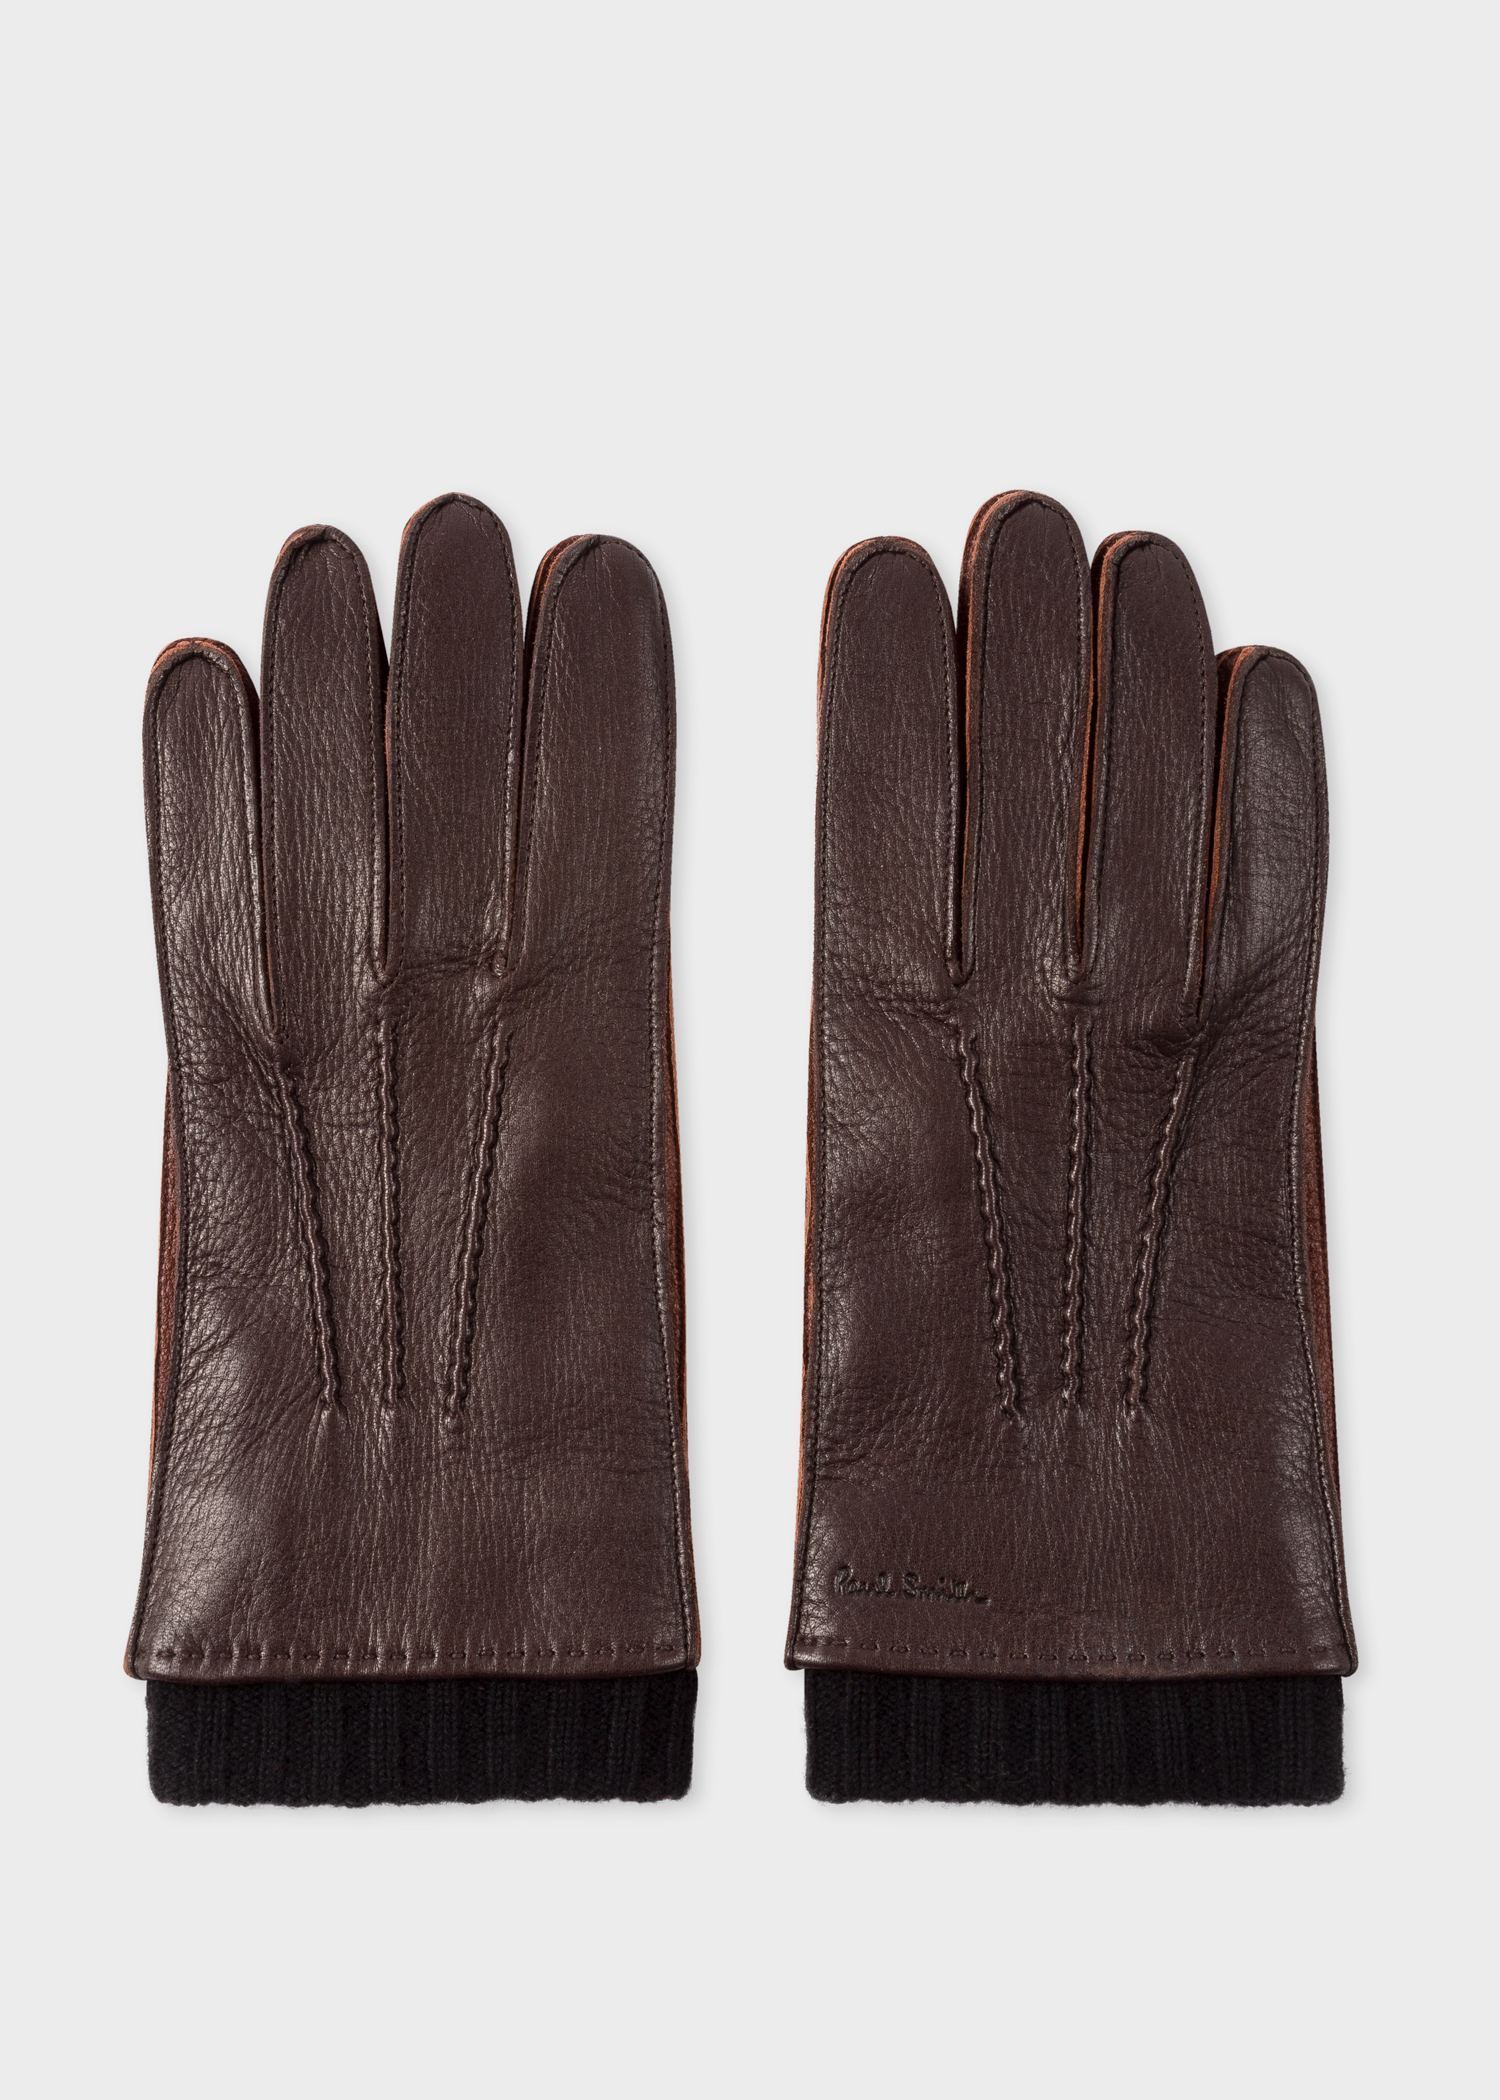 acba8c0761ed1 Men's Chocolate Brown Deerskin Silk-Cashmere Lined Gloves Paul Smith